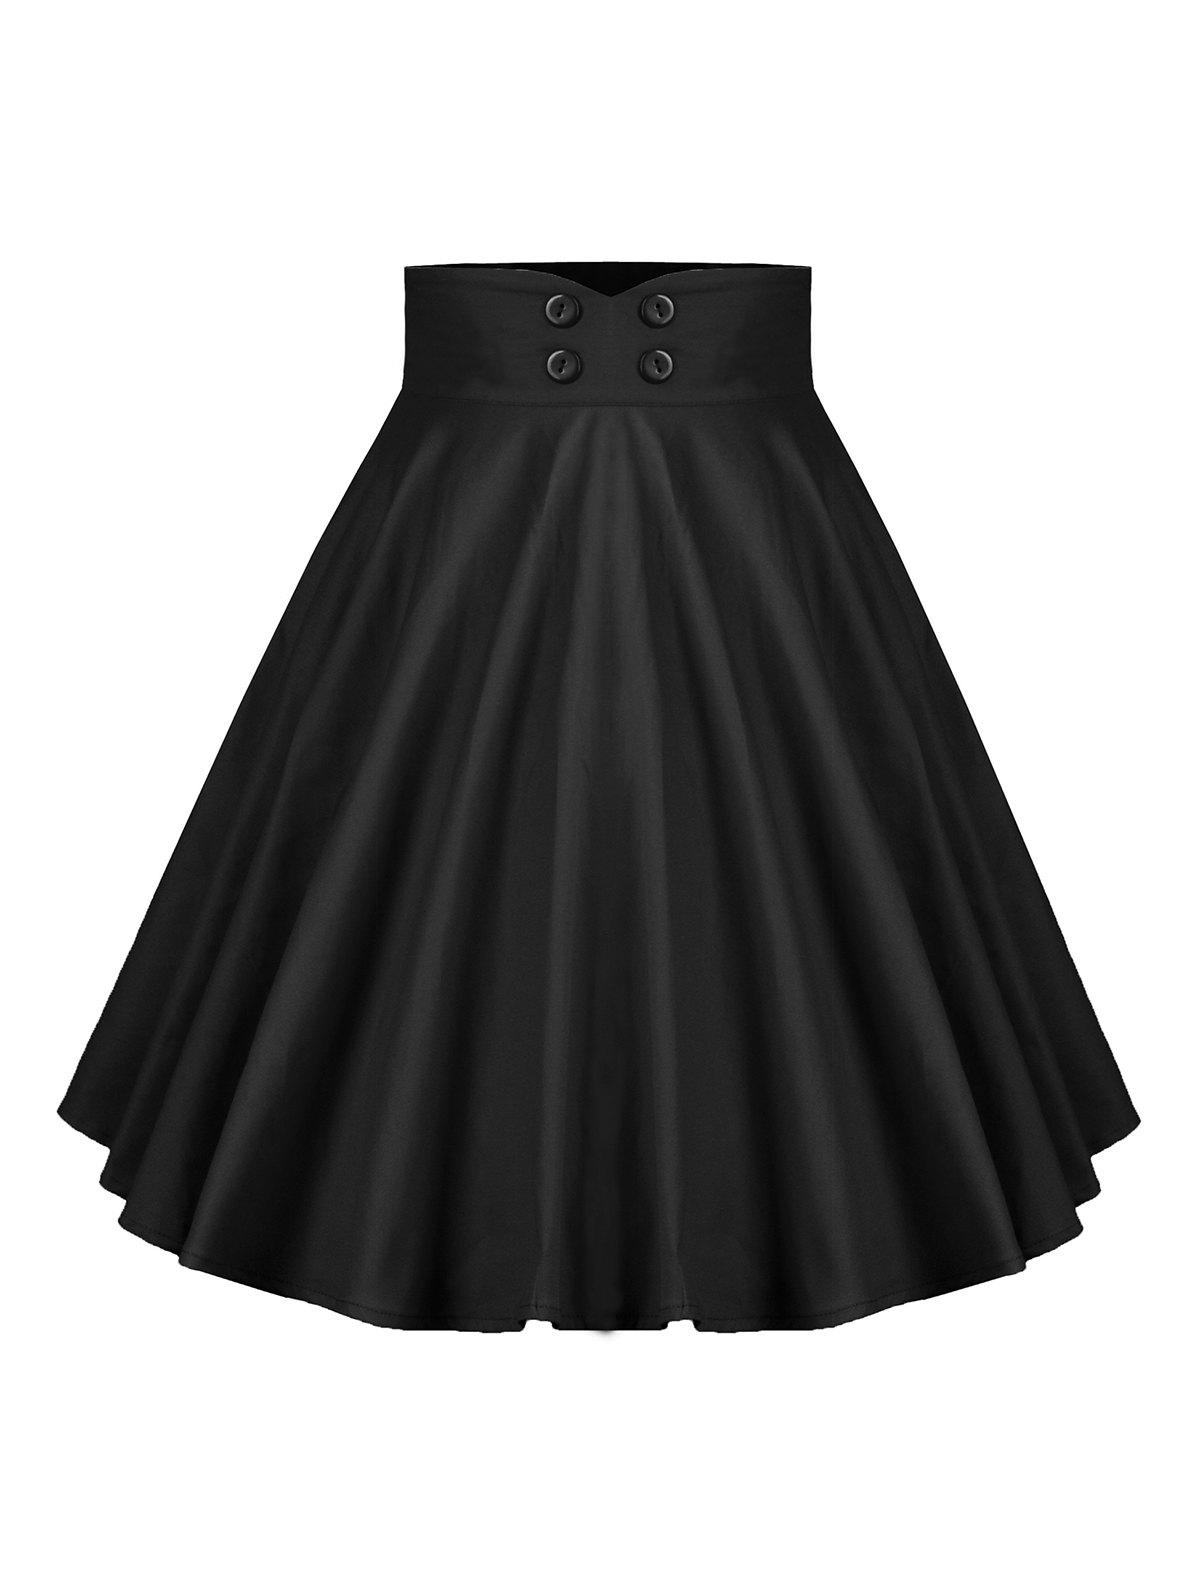 Buttoned A Line High Rise Pleated Skirt - BLACK M